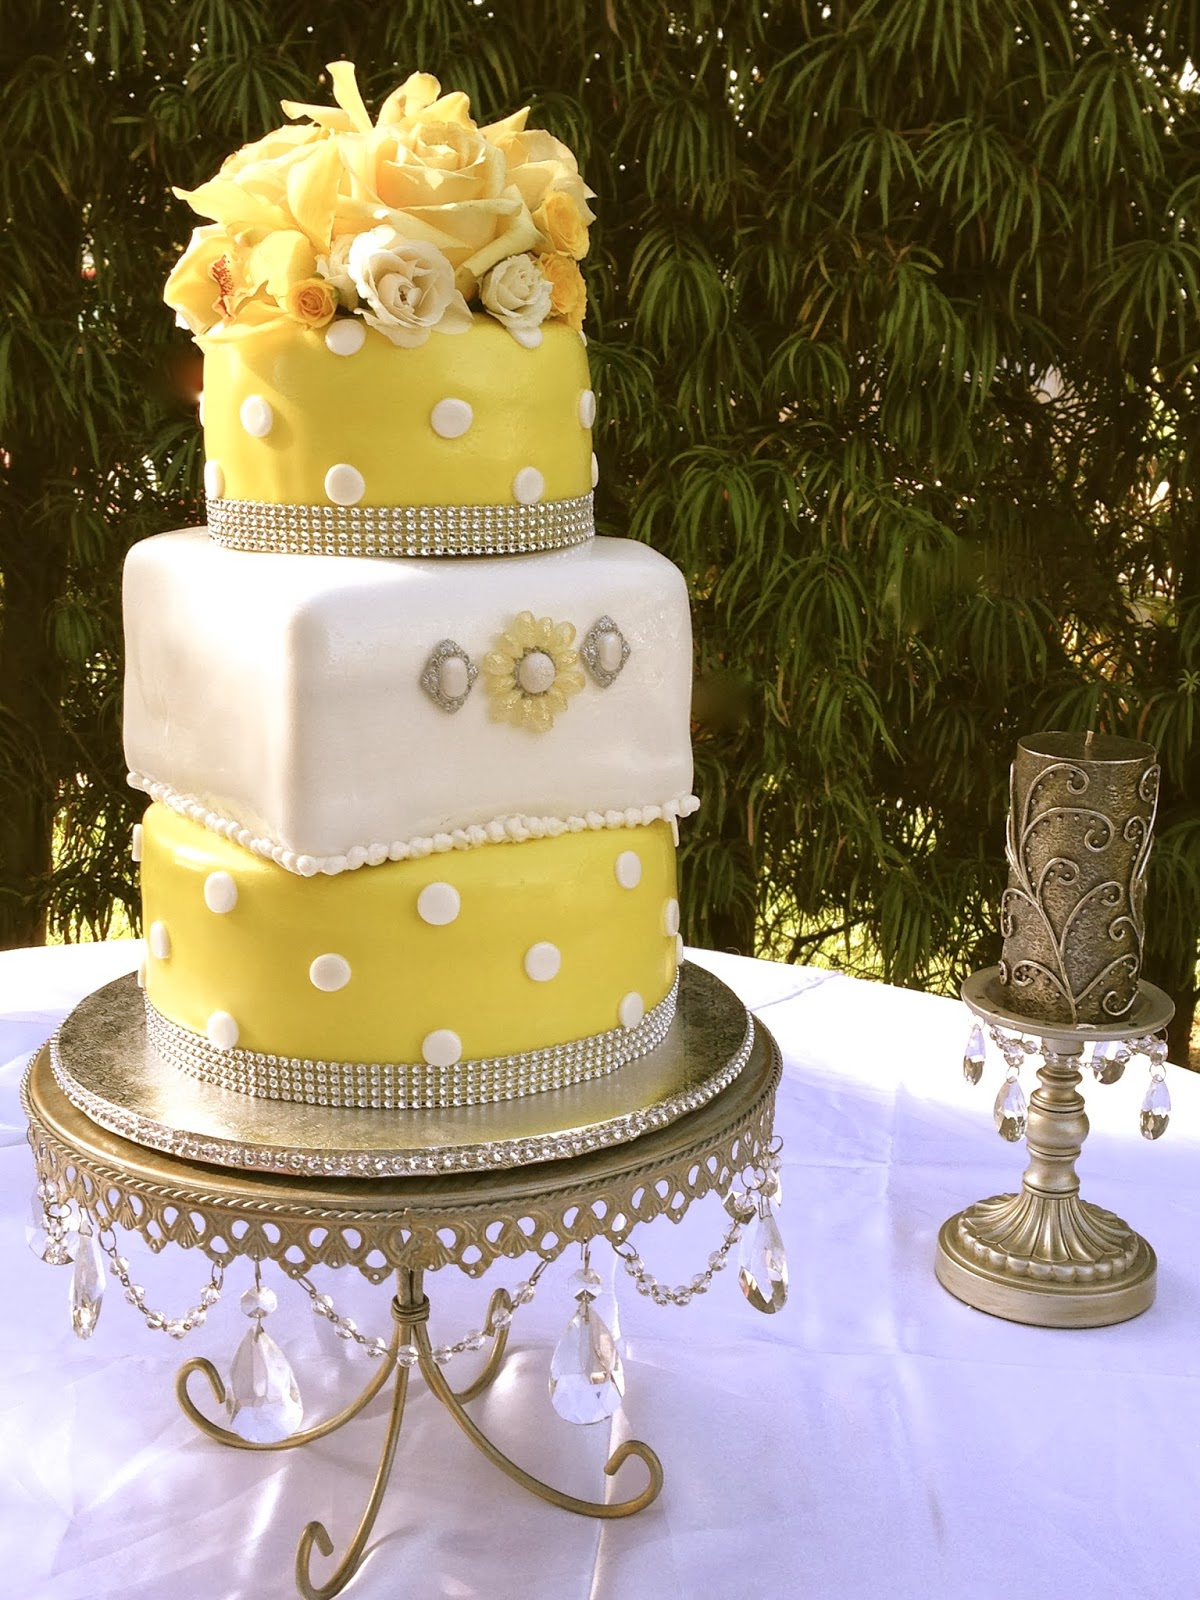 Plumeria Cake Studio Yellow Polka Dot Wedding Cake And Treats